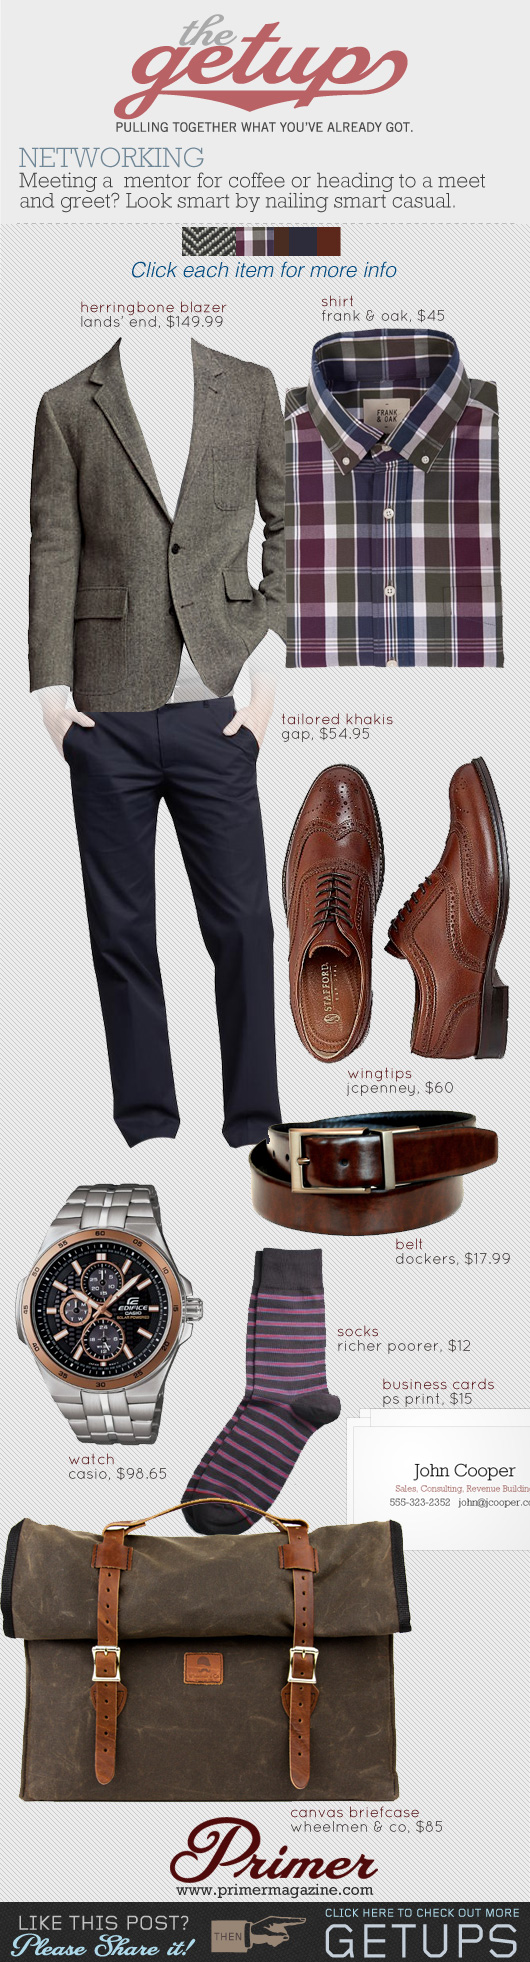 Getup Networking: Gray blazer, plaid shirt, blue dress pants, brown wingtip shoes outfit idea